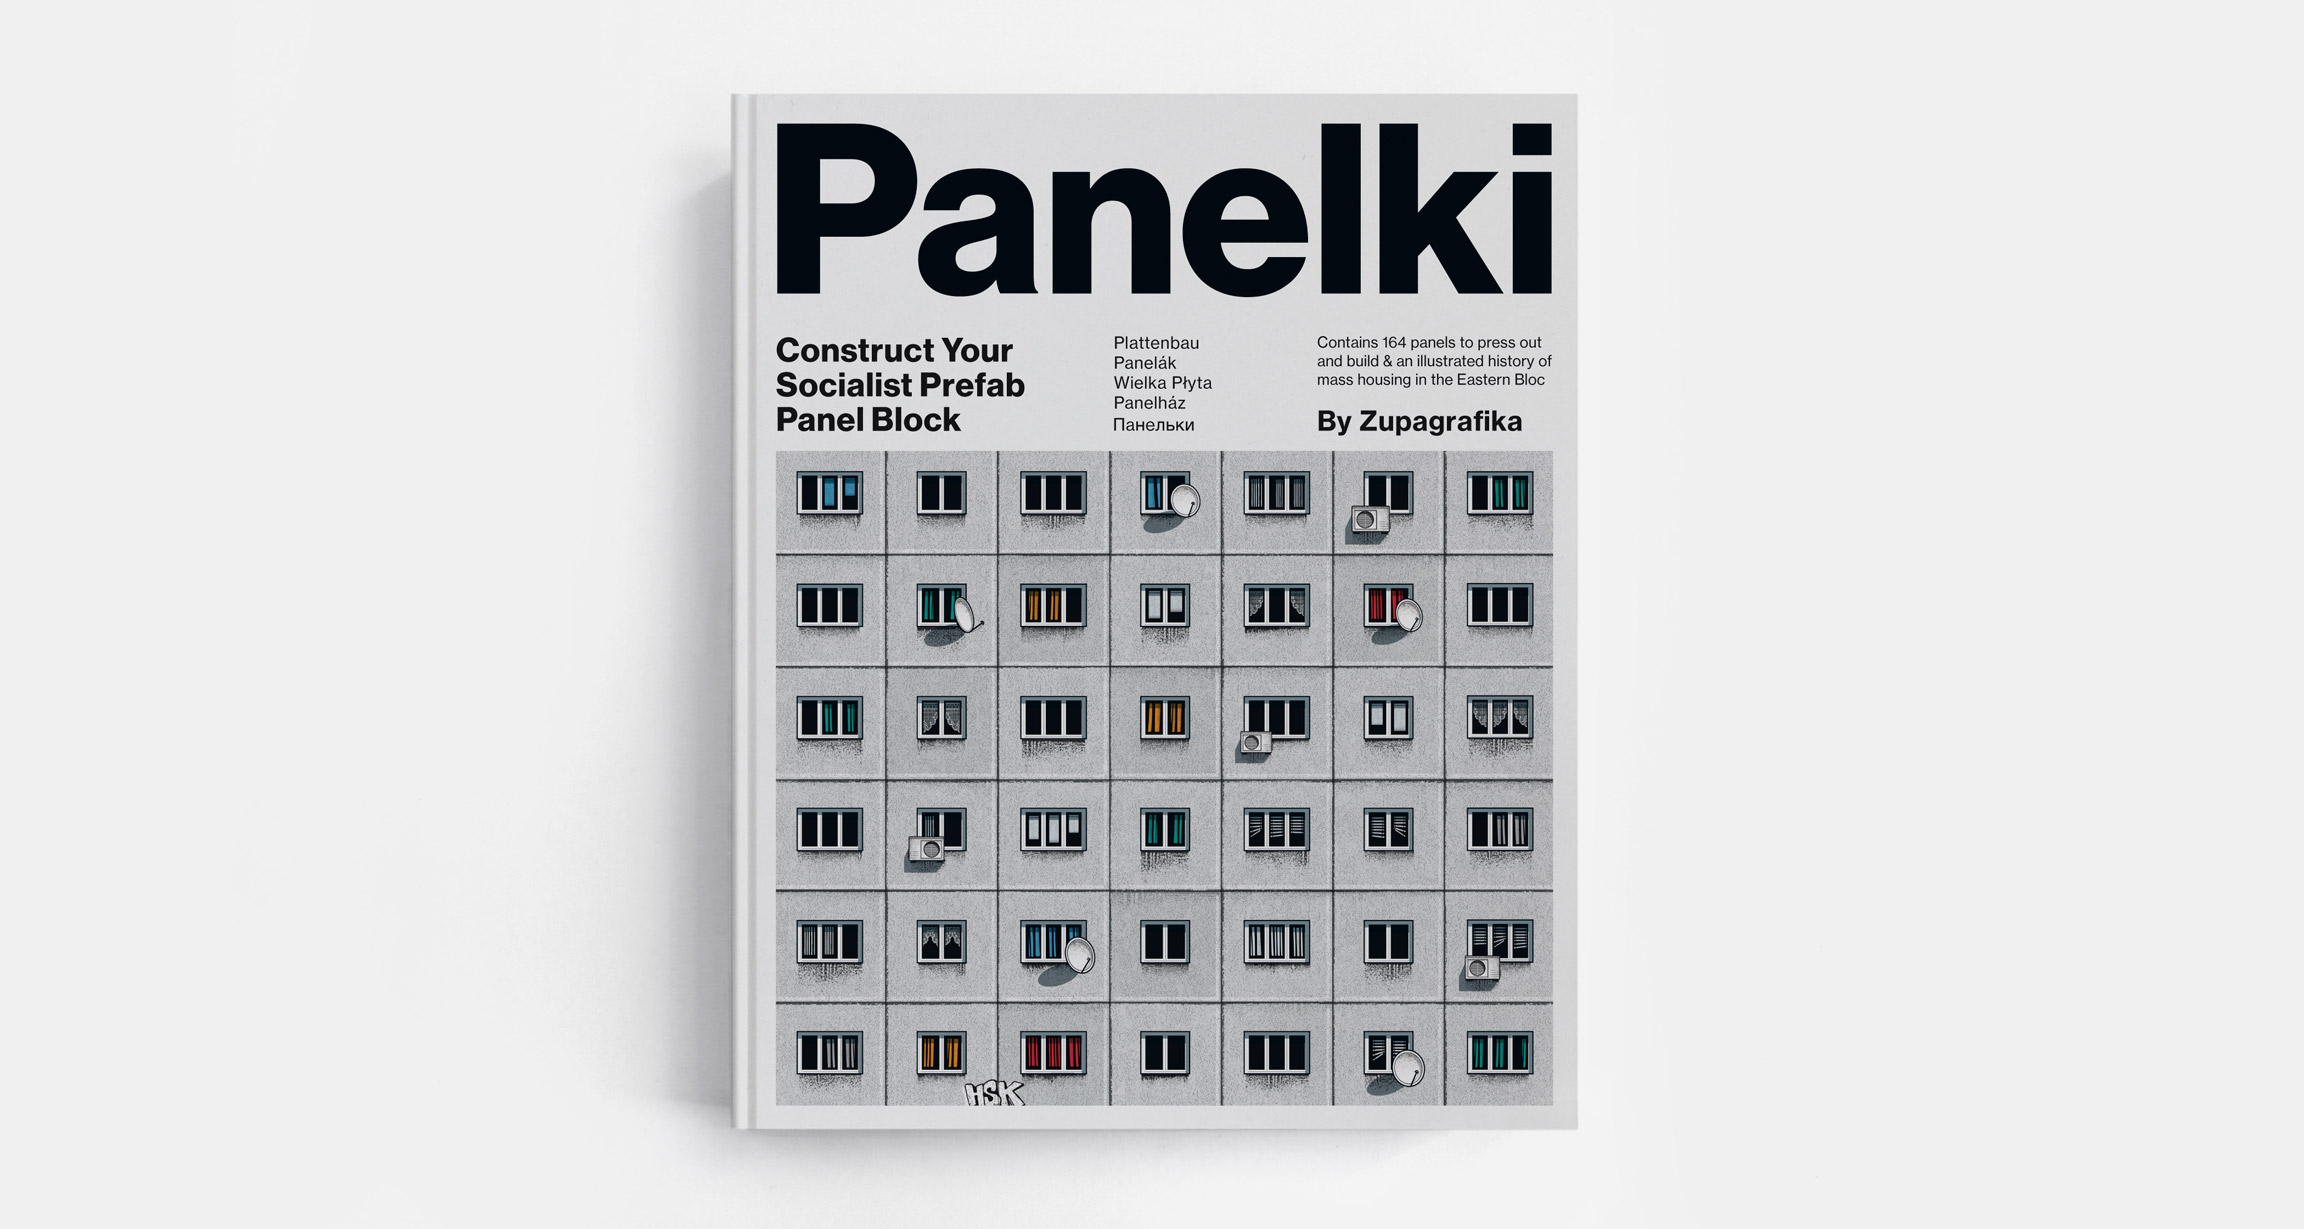 Panelki: Construct Your Socialis Prefab Panel Block. Contains 164 press-out prefab panels and an illustrated history on mass housing in the former Eastern Bloc